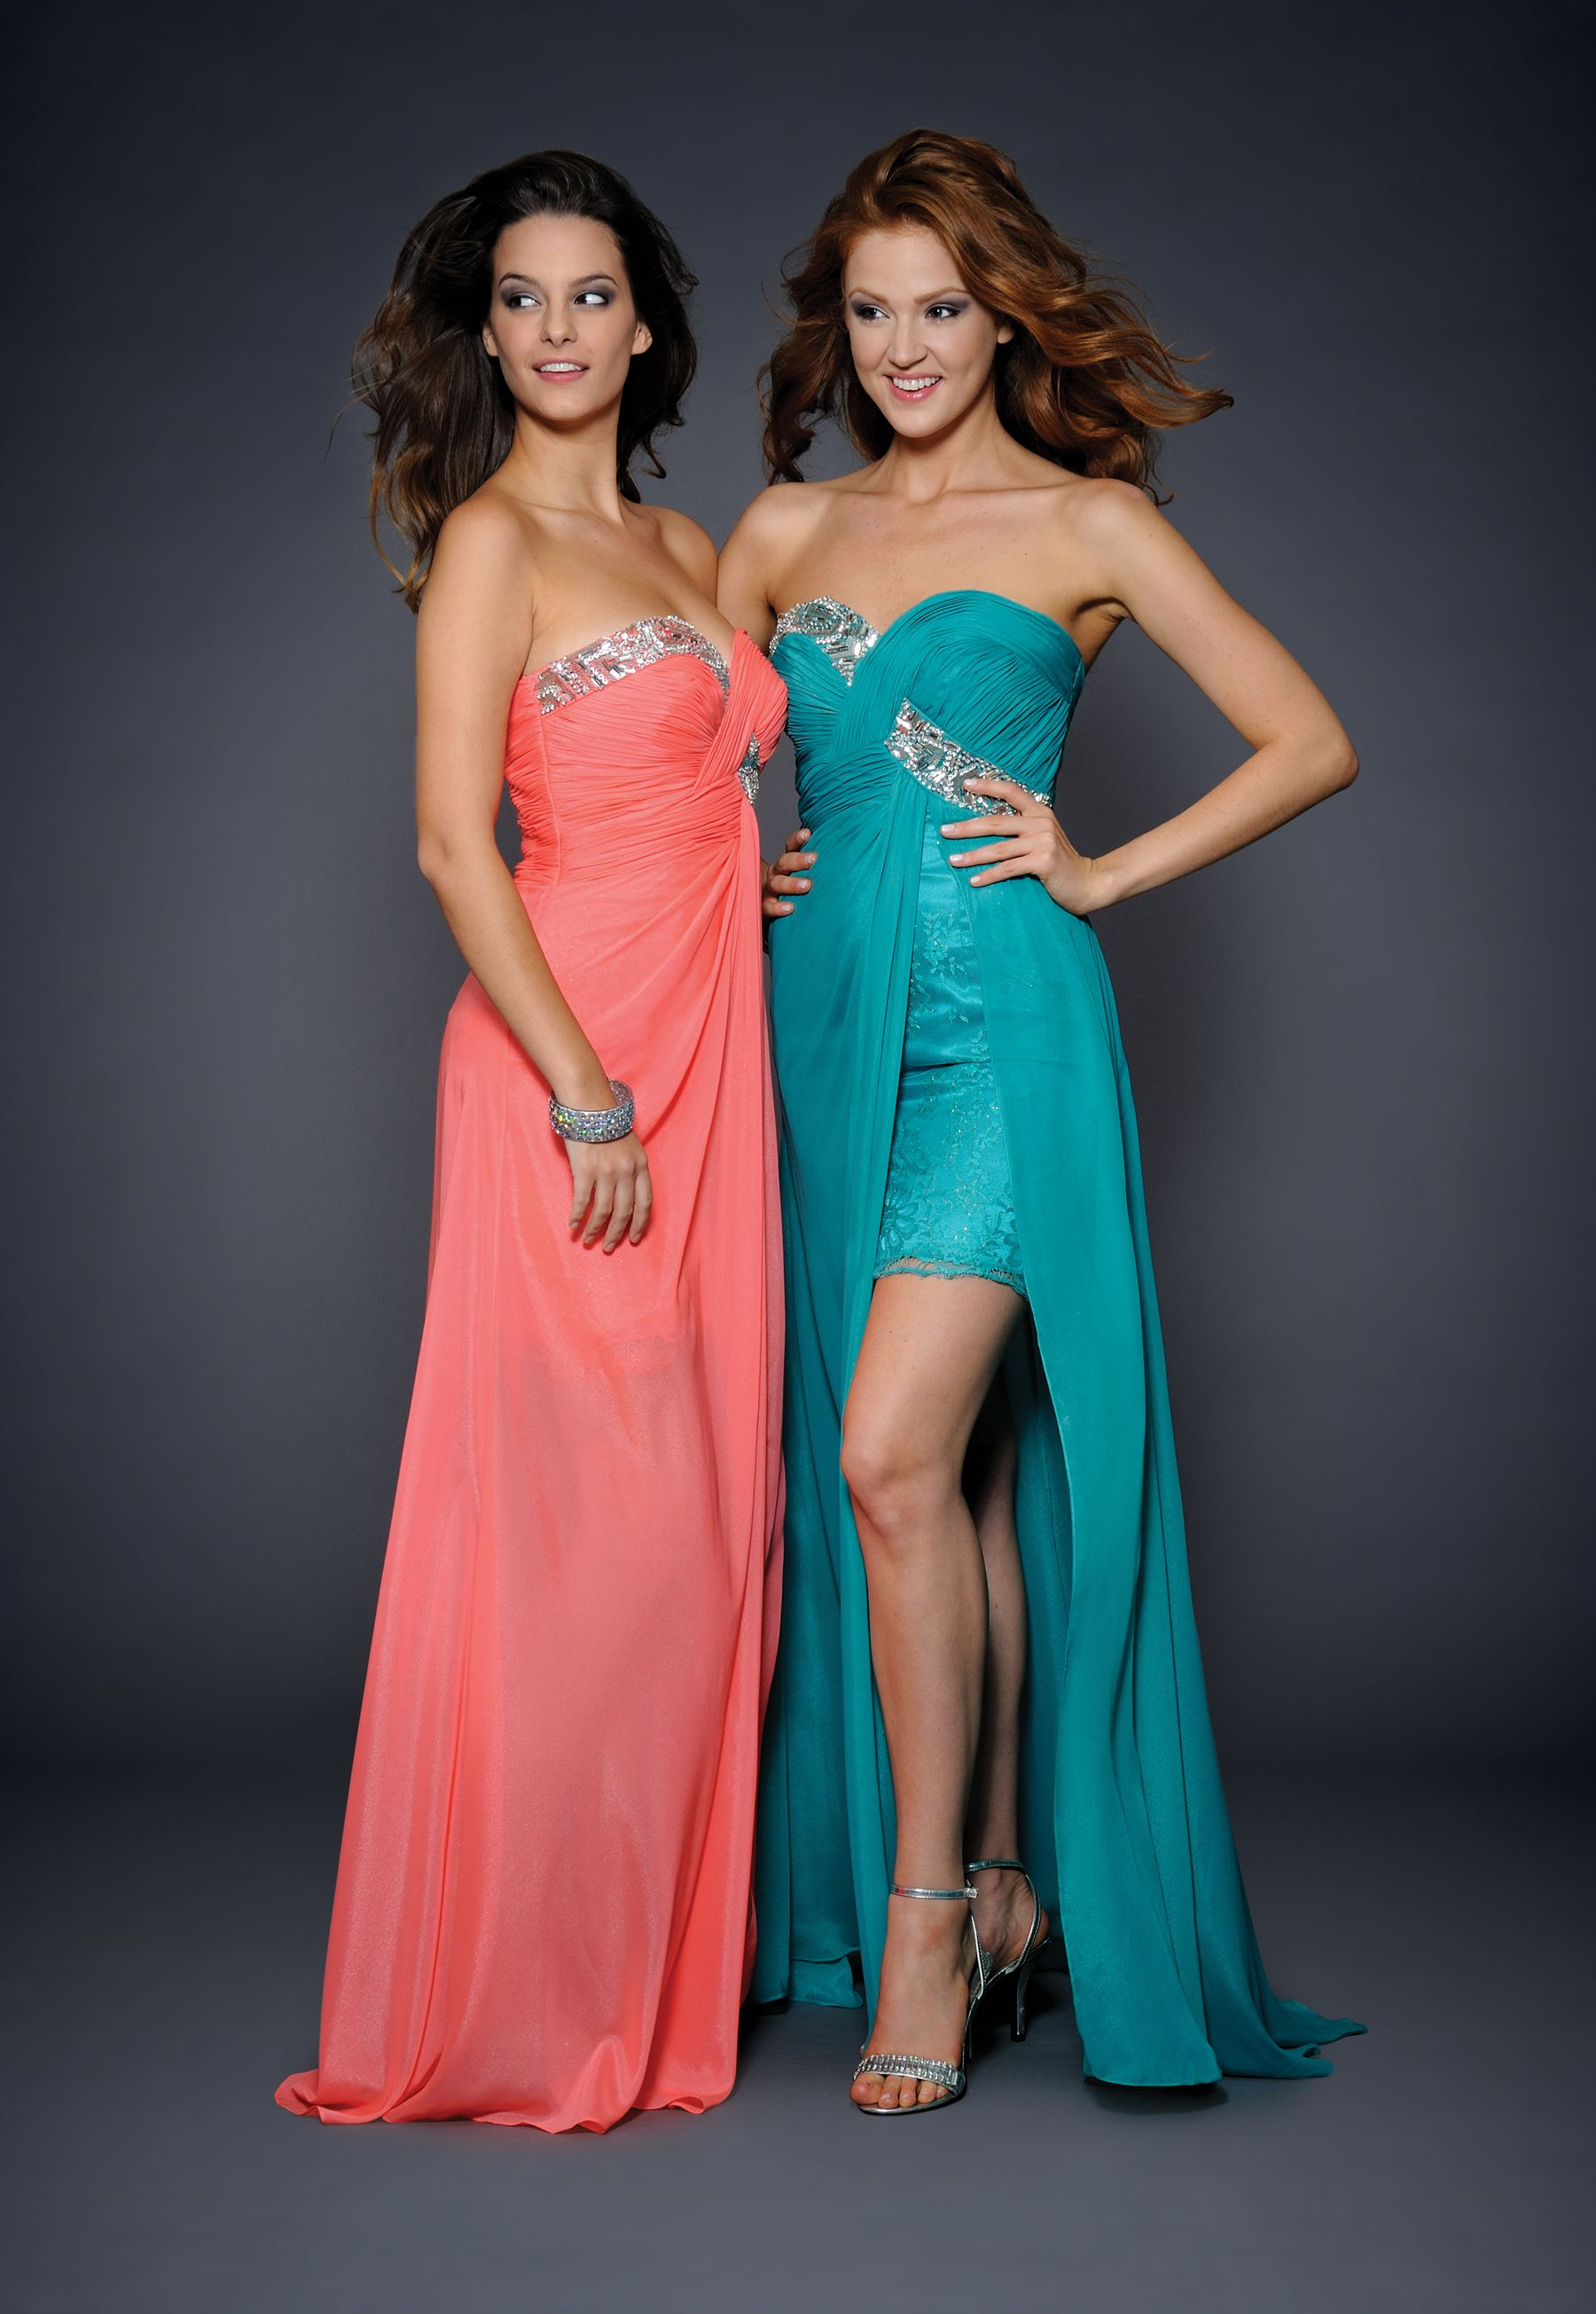 30c9469cbf0 coral and teal bridesmaid dresses. This might be fun having like maid of  honor and sisters in one color and other bridesmaids in the other.